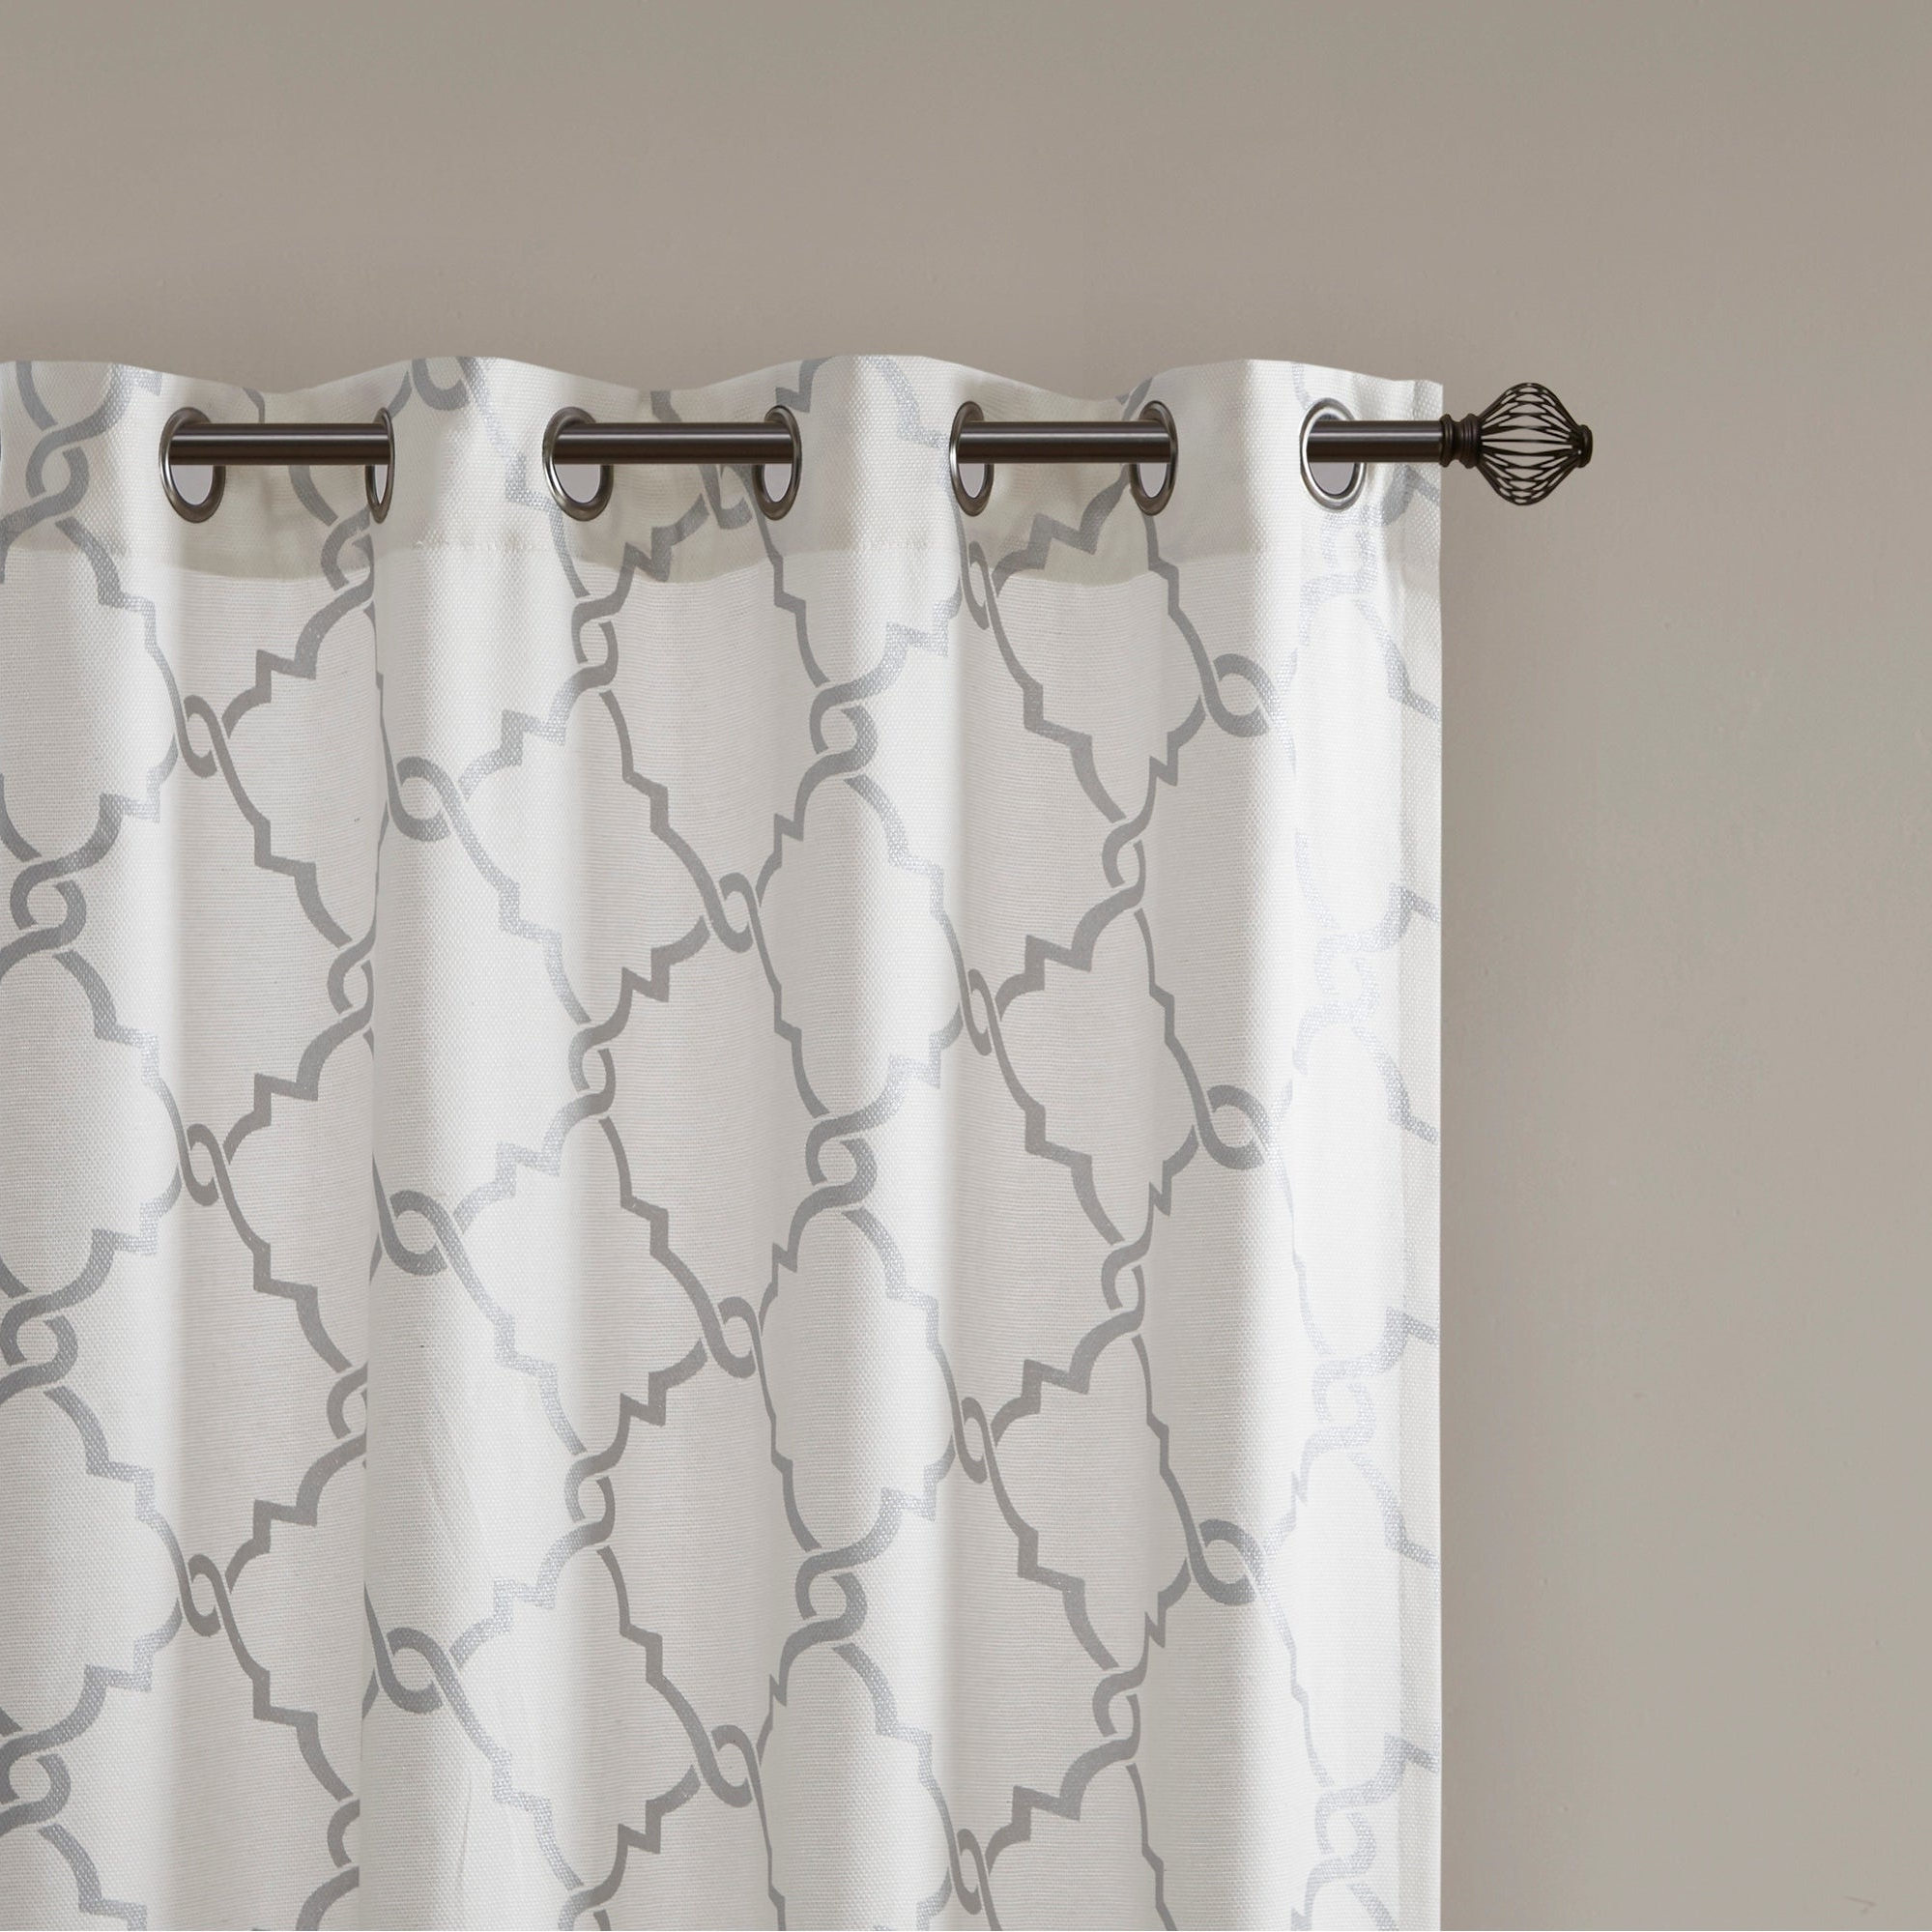 Madison Park Westmont Fretwork Print Pattern Single Curtain Panel Intended For Most Recent Fretwork Print Pattern Single Curtain Panels (Gallery 5 of 20)